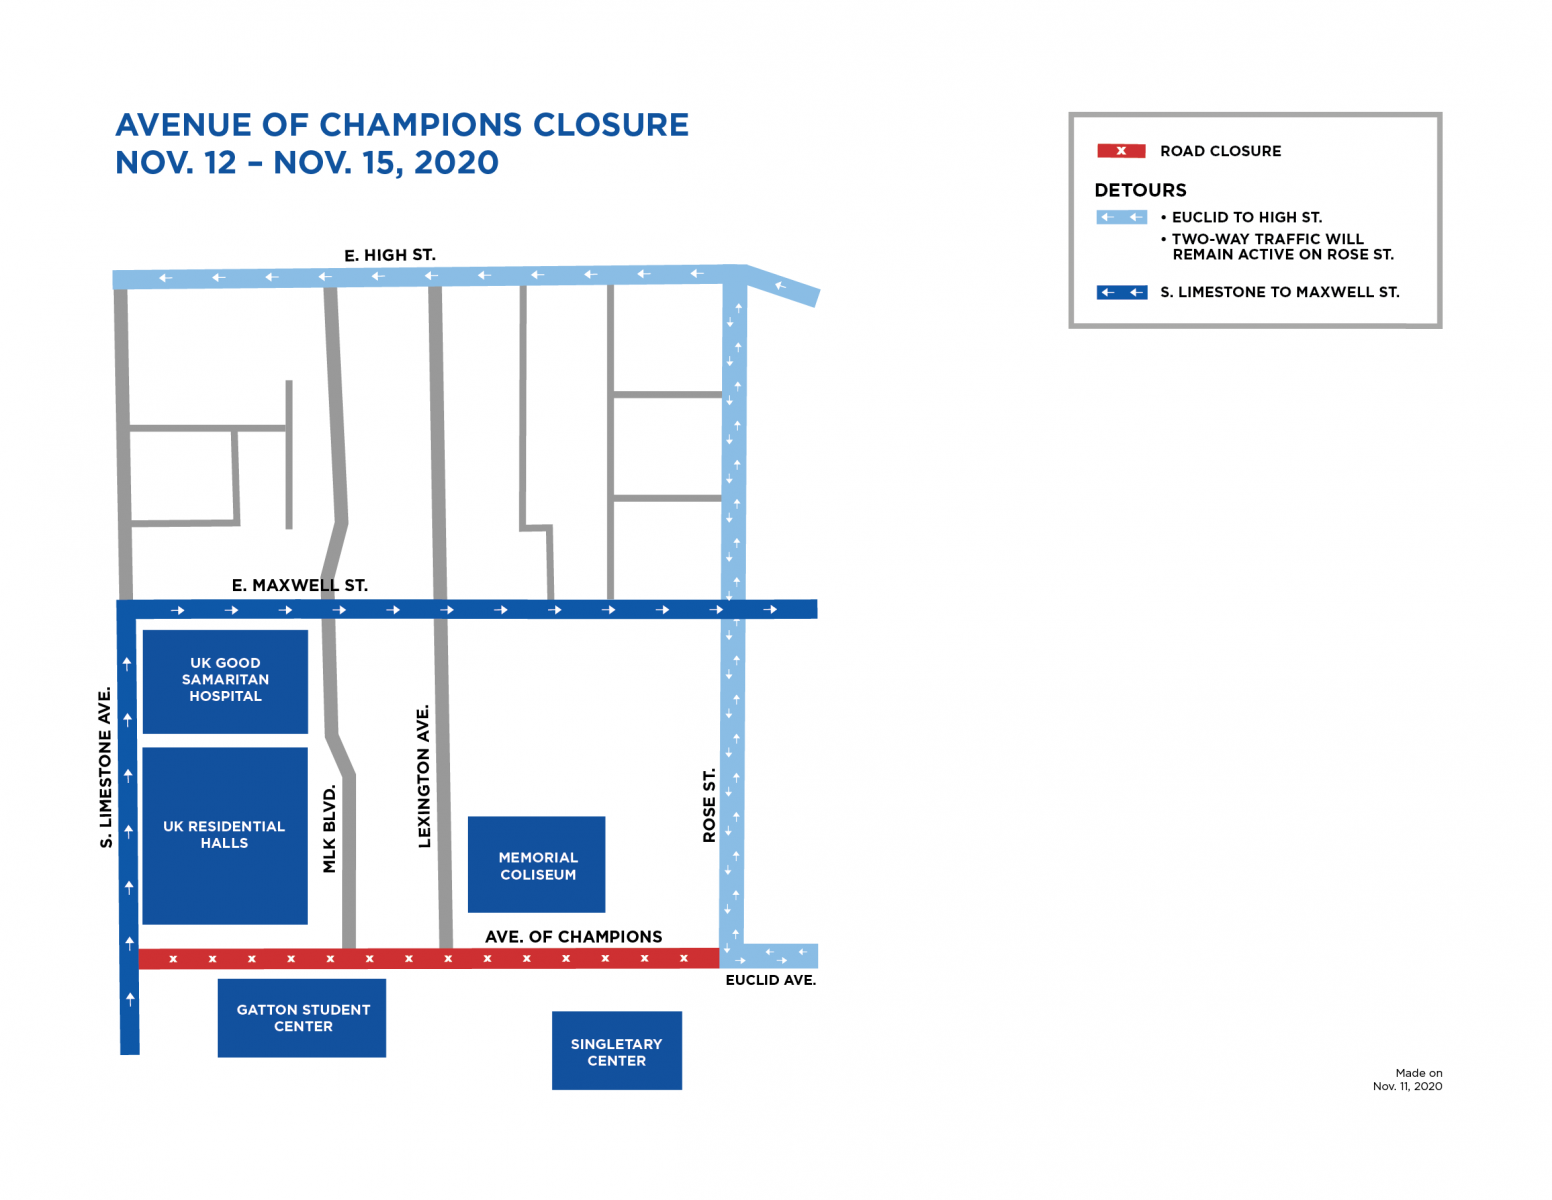 graphic showing Avenue of Champions closed from Nov 12 to 15